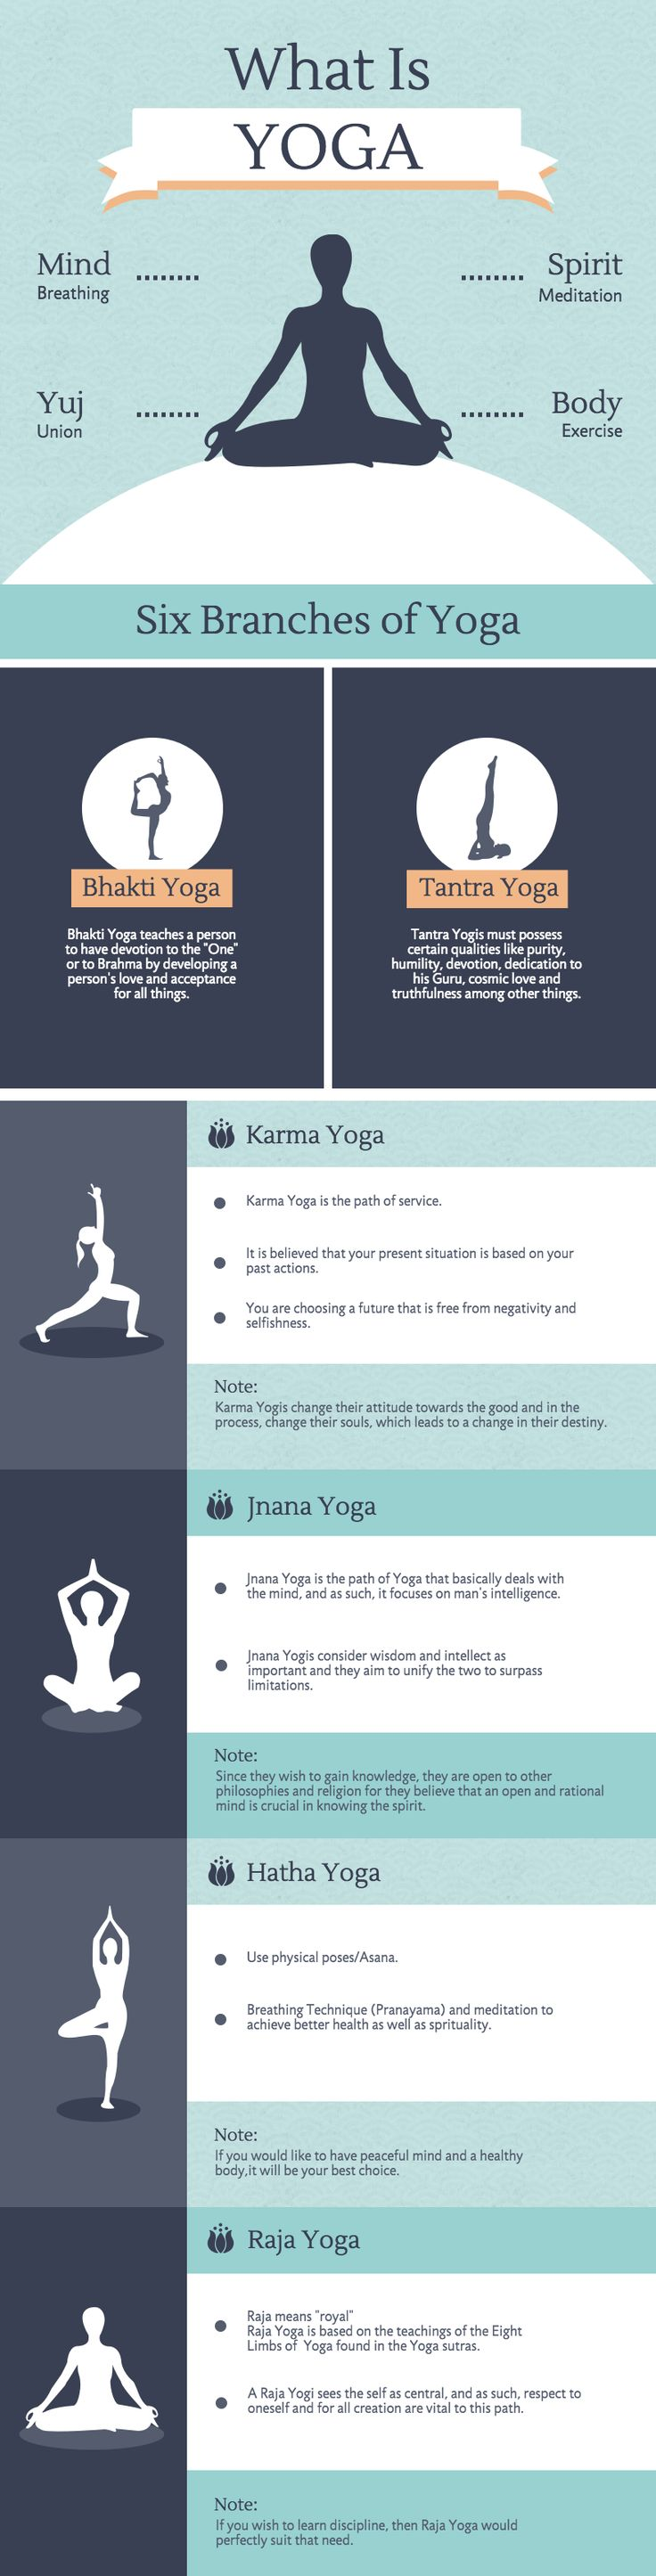 Learn about the 6 different branches of Yoga in this infographic template. This template is suitable for breaking down key information into a digestible visual format, and is highly suitable for health-related topics.